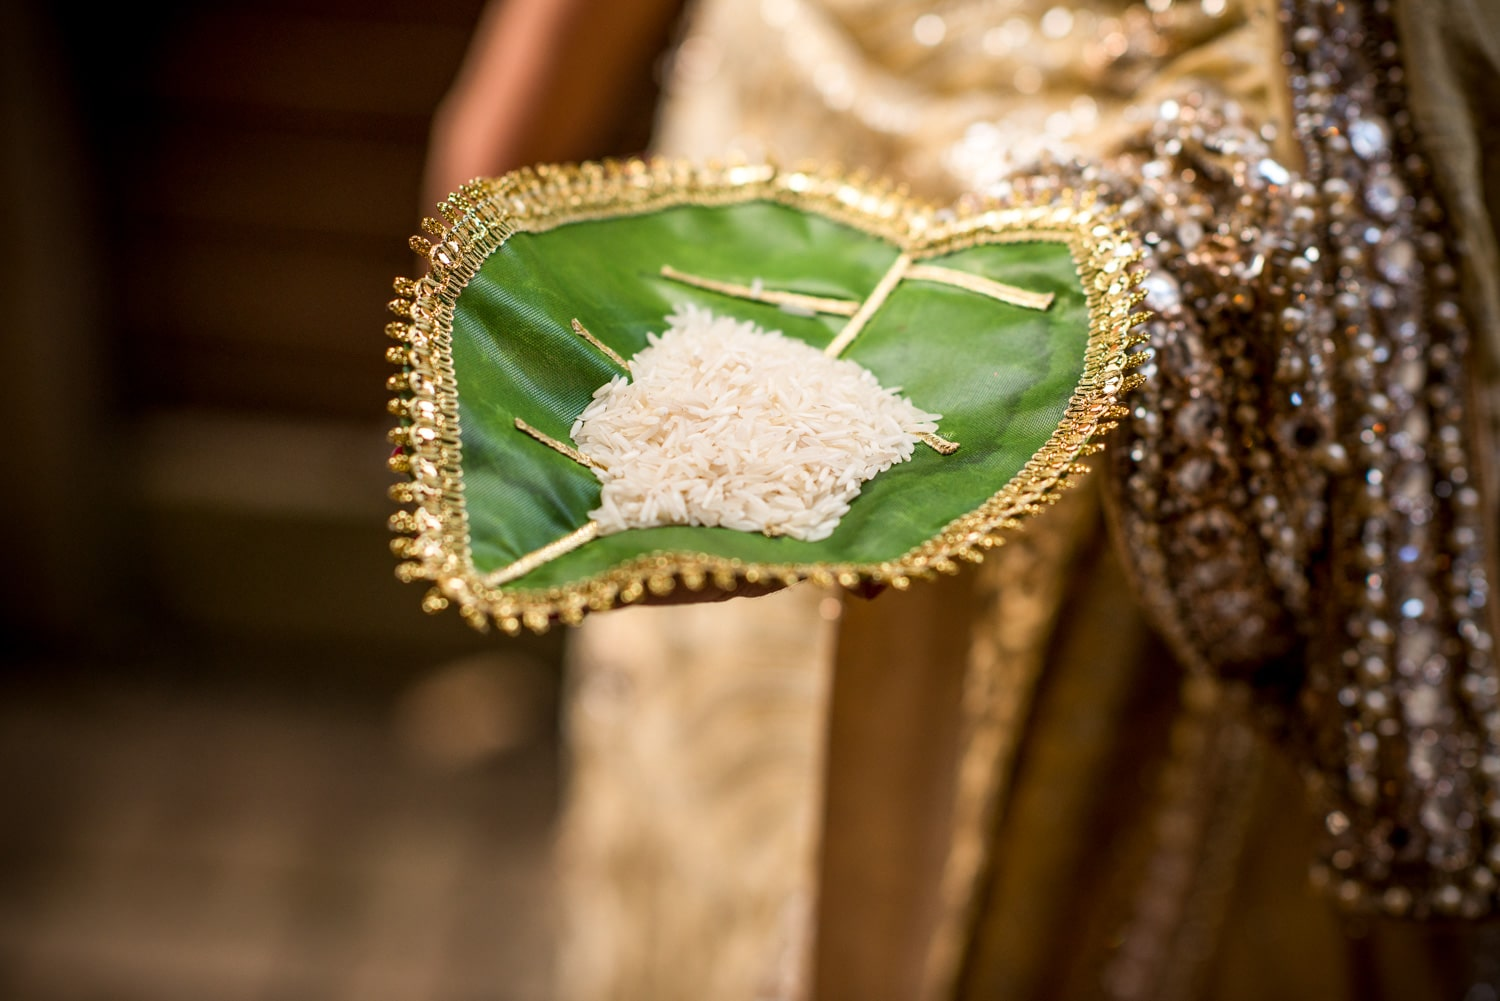 Muslim wedding ritual, rice in leaf